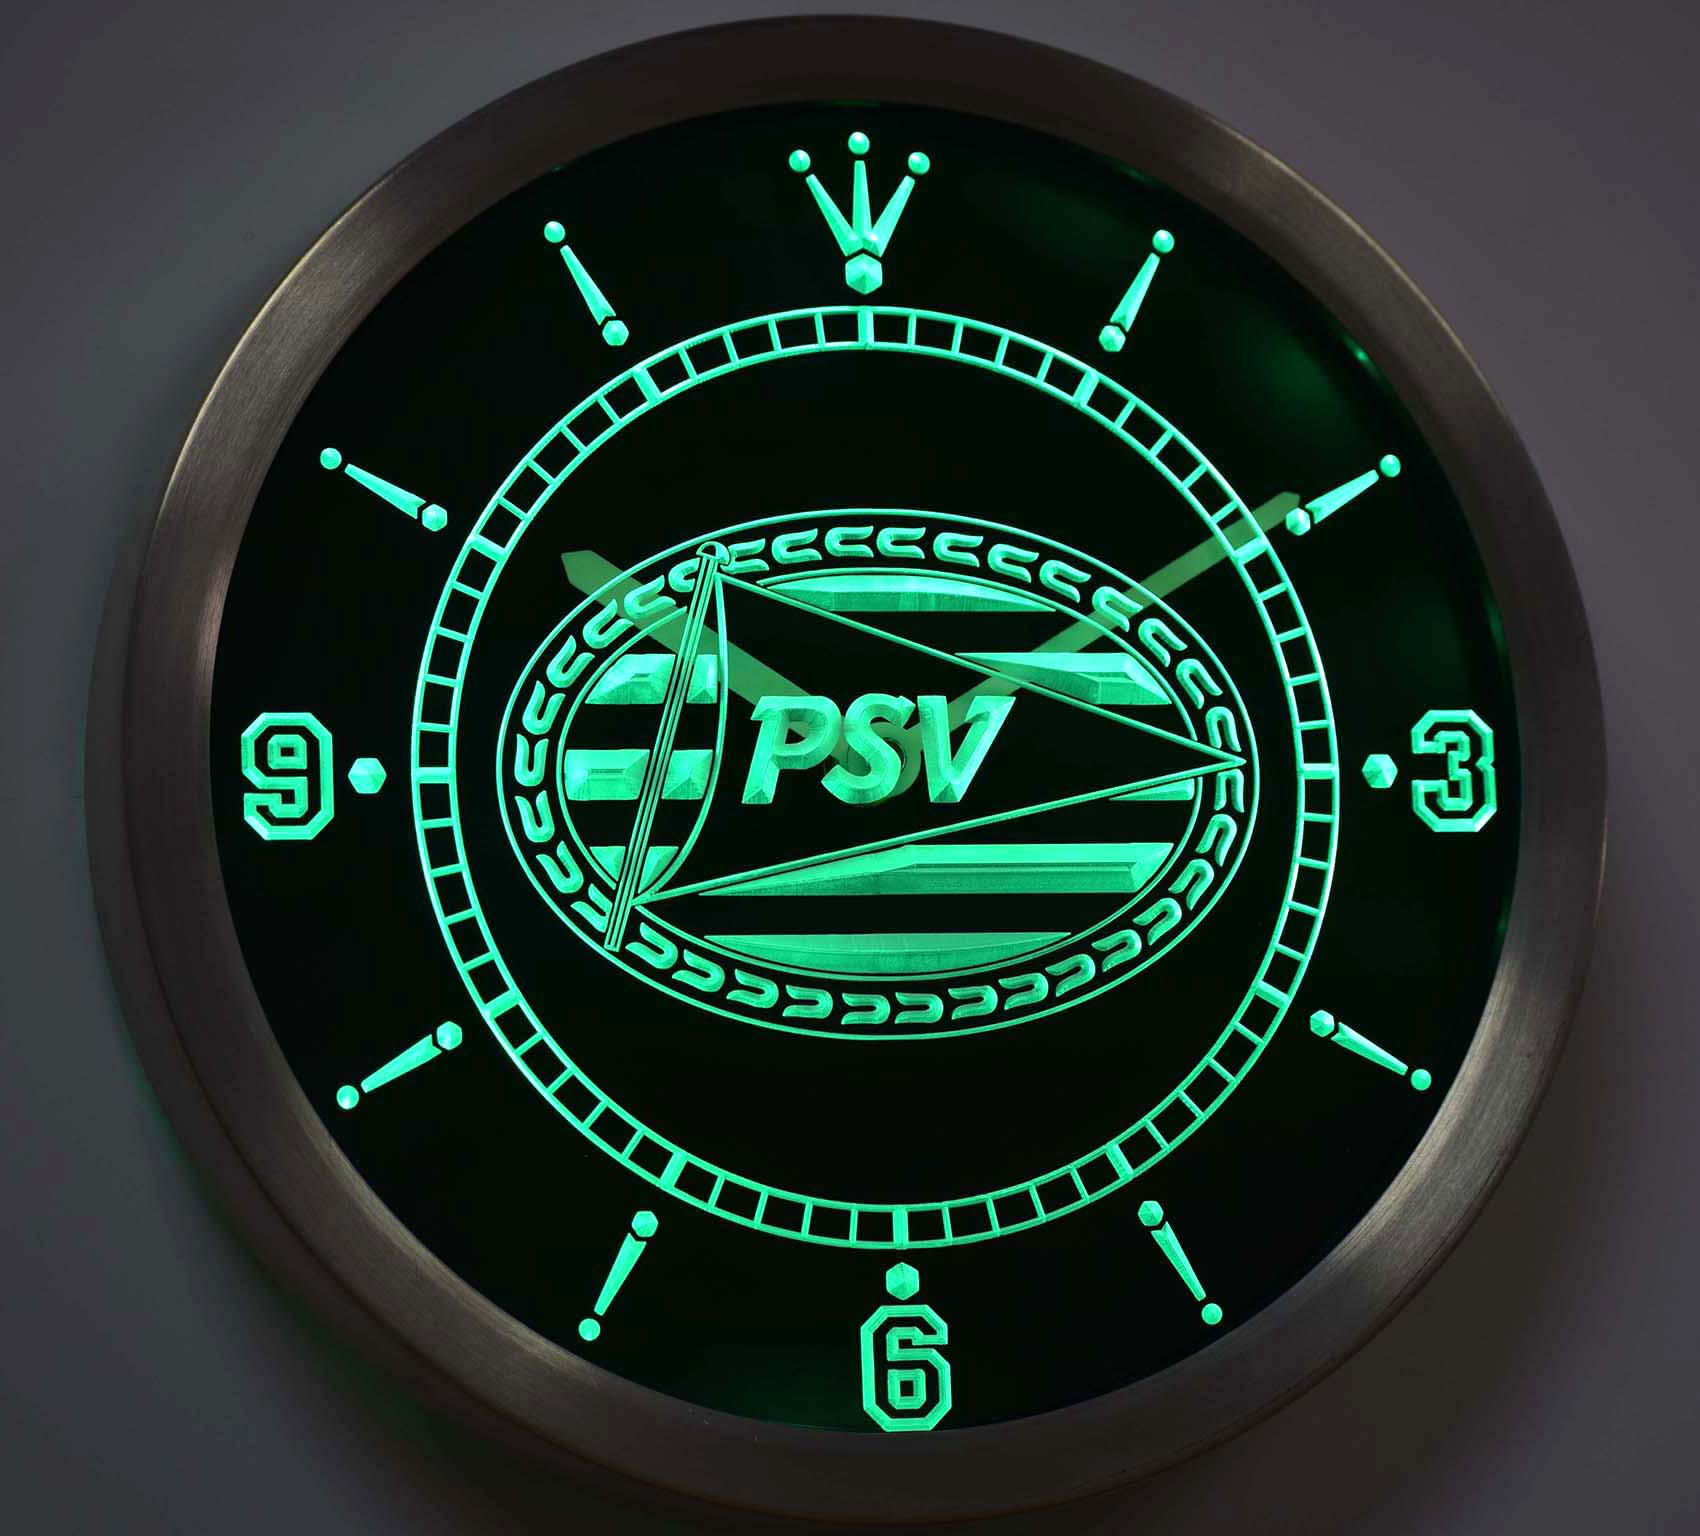 Nc1010 PSV Eindhoven Sport Vereniging Eredivisie Neon Sign LED Wall Clock